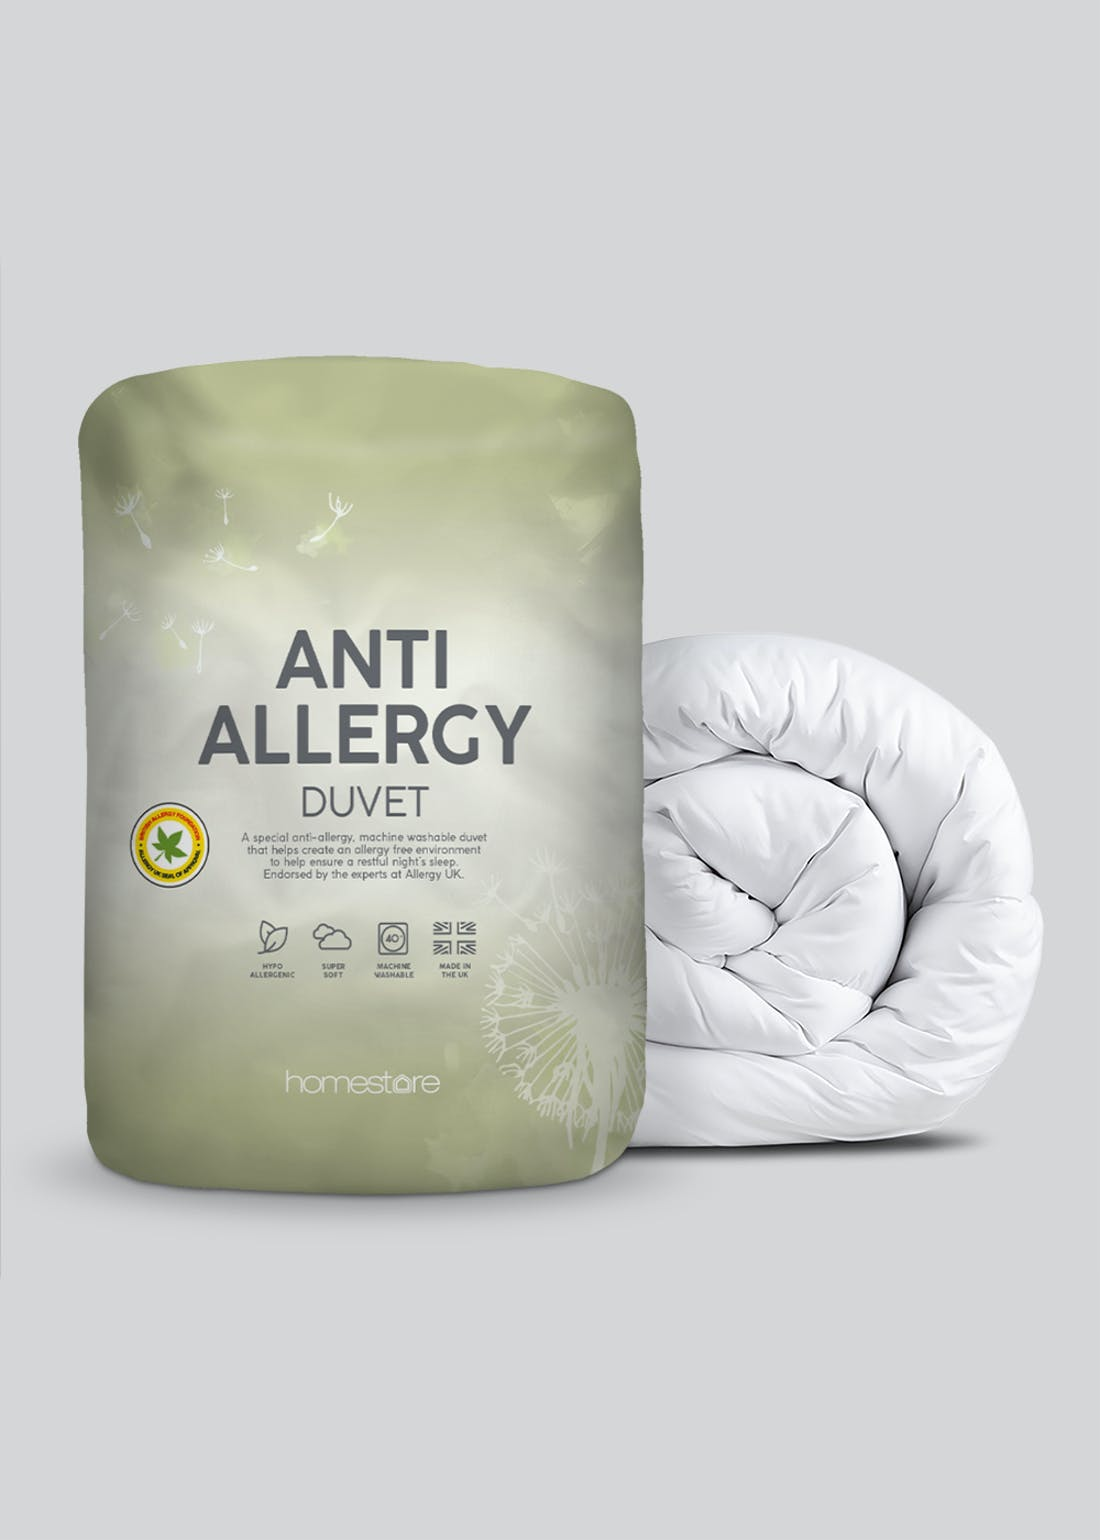 Anti Allergy Duvet (10.5 Tog)